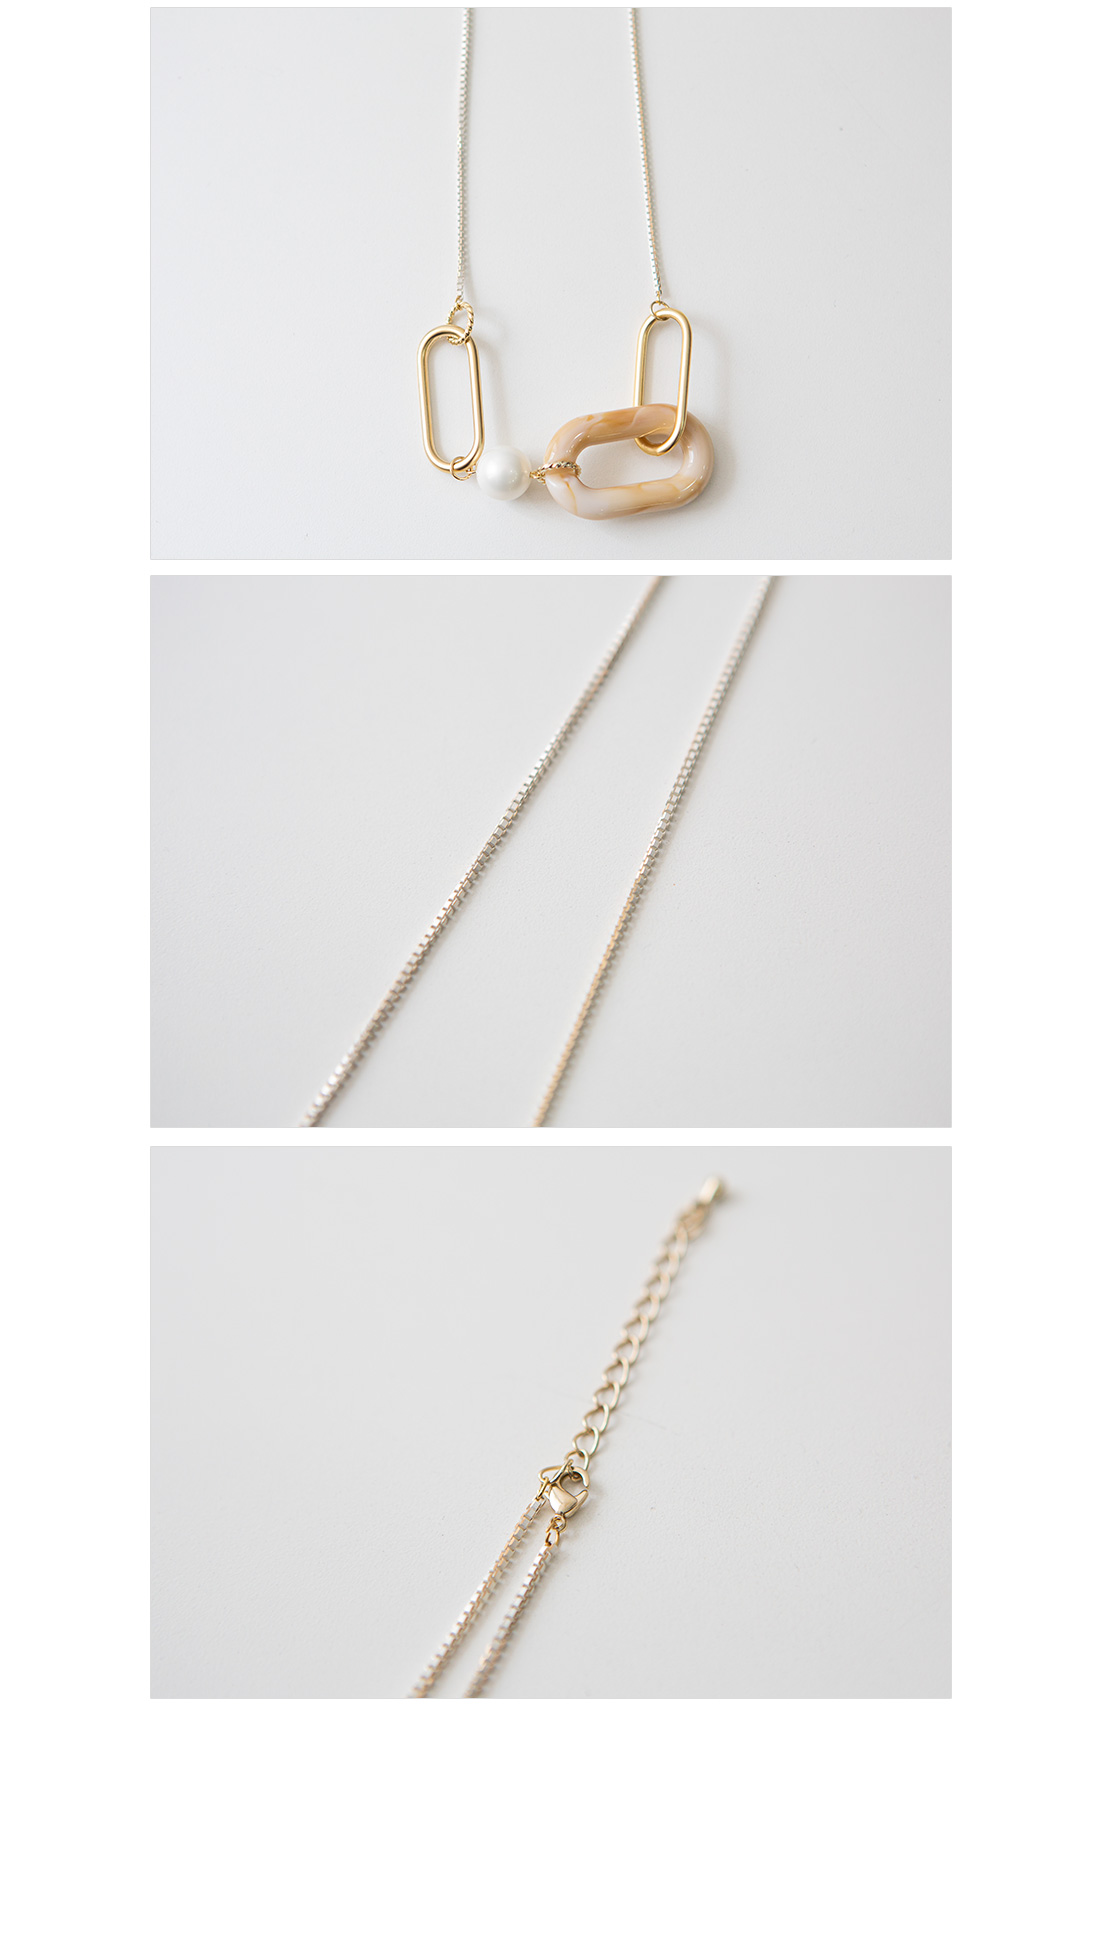 Pearl Homica Long Necklace #86182